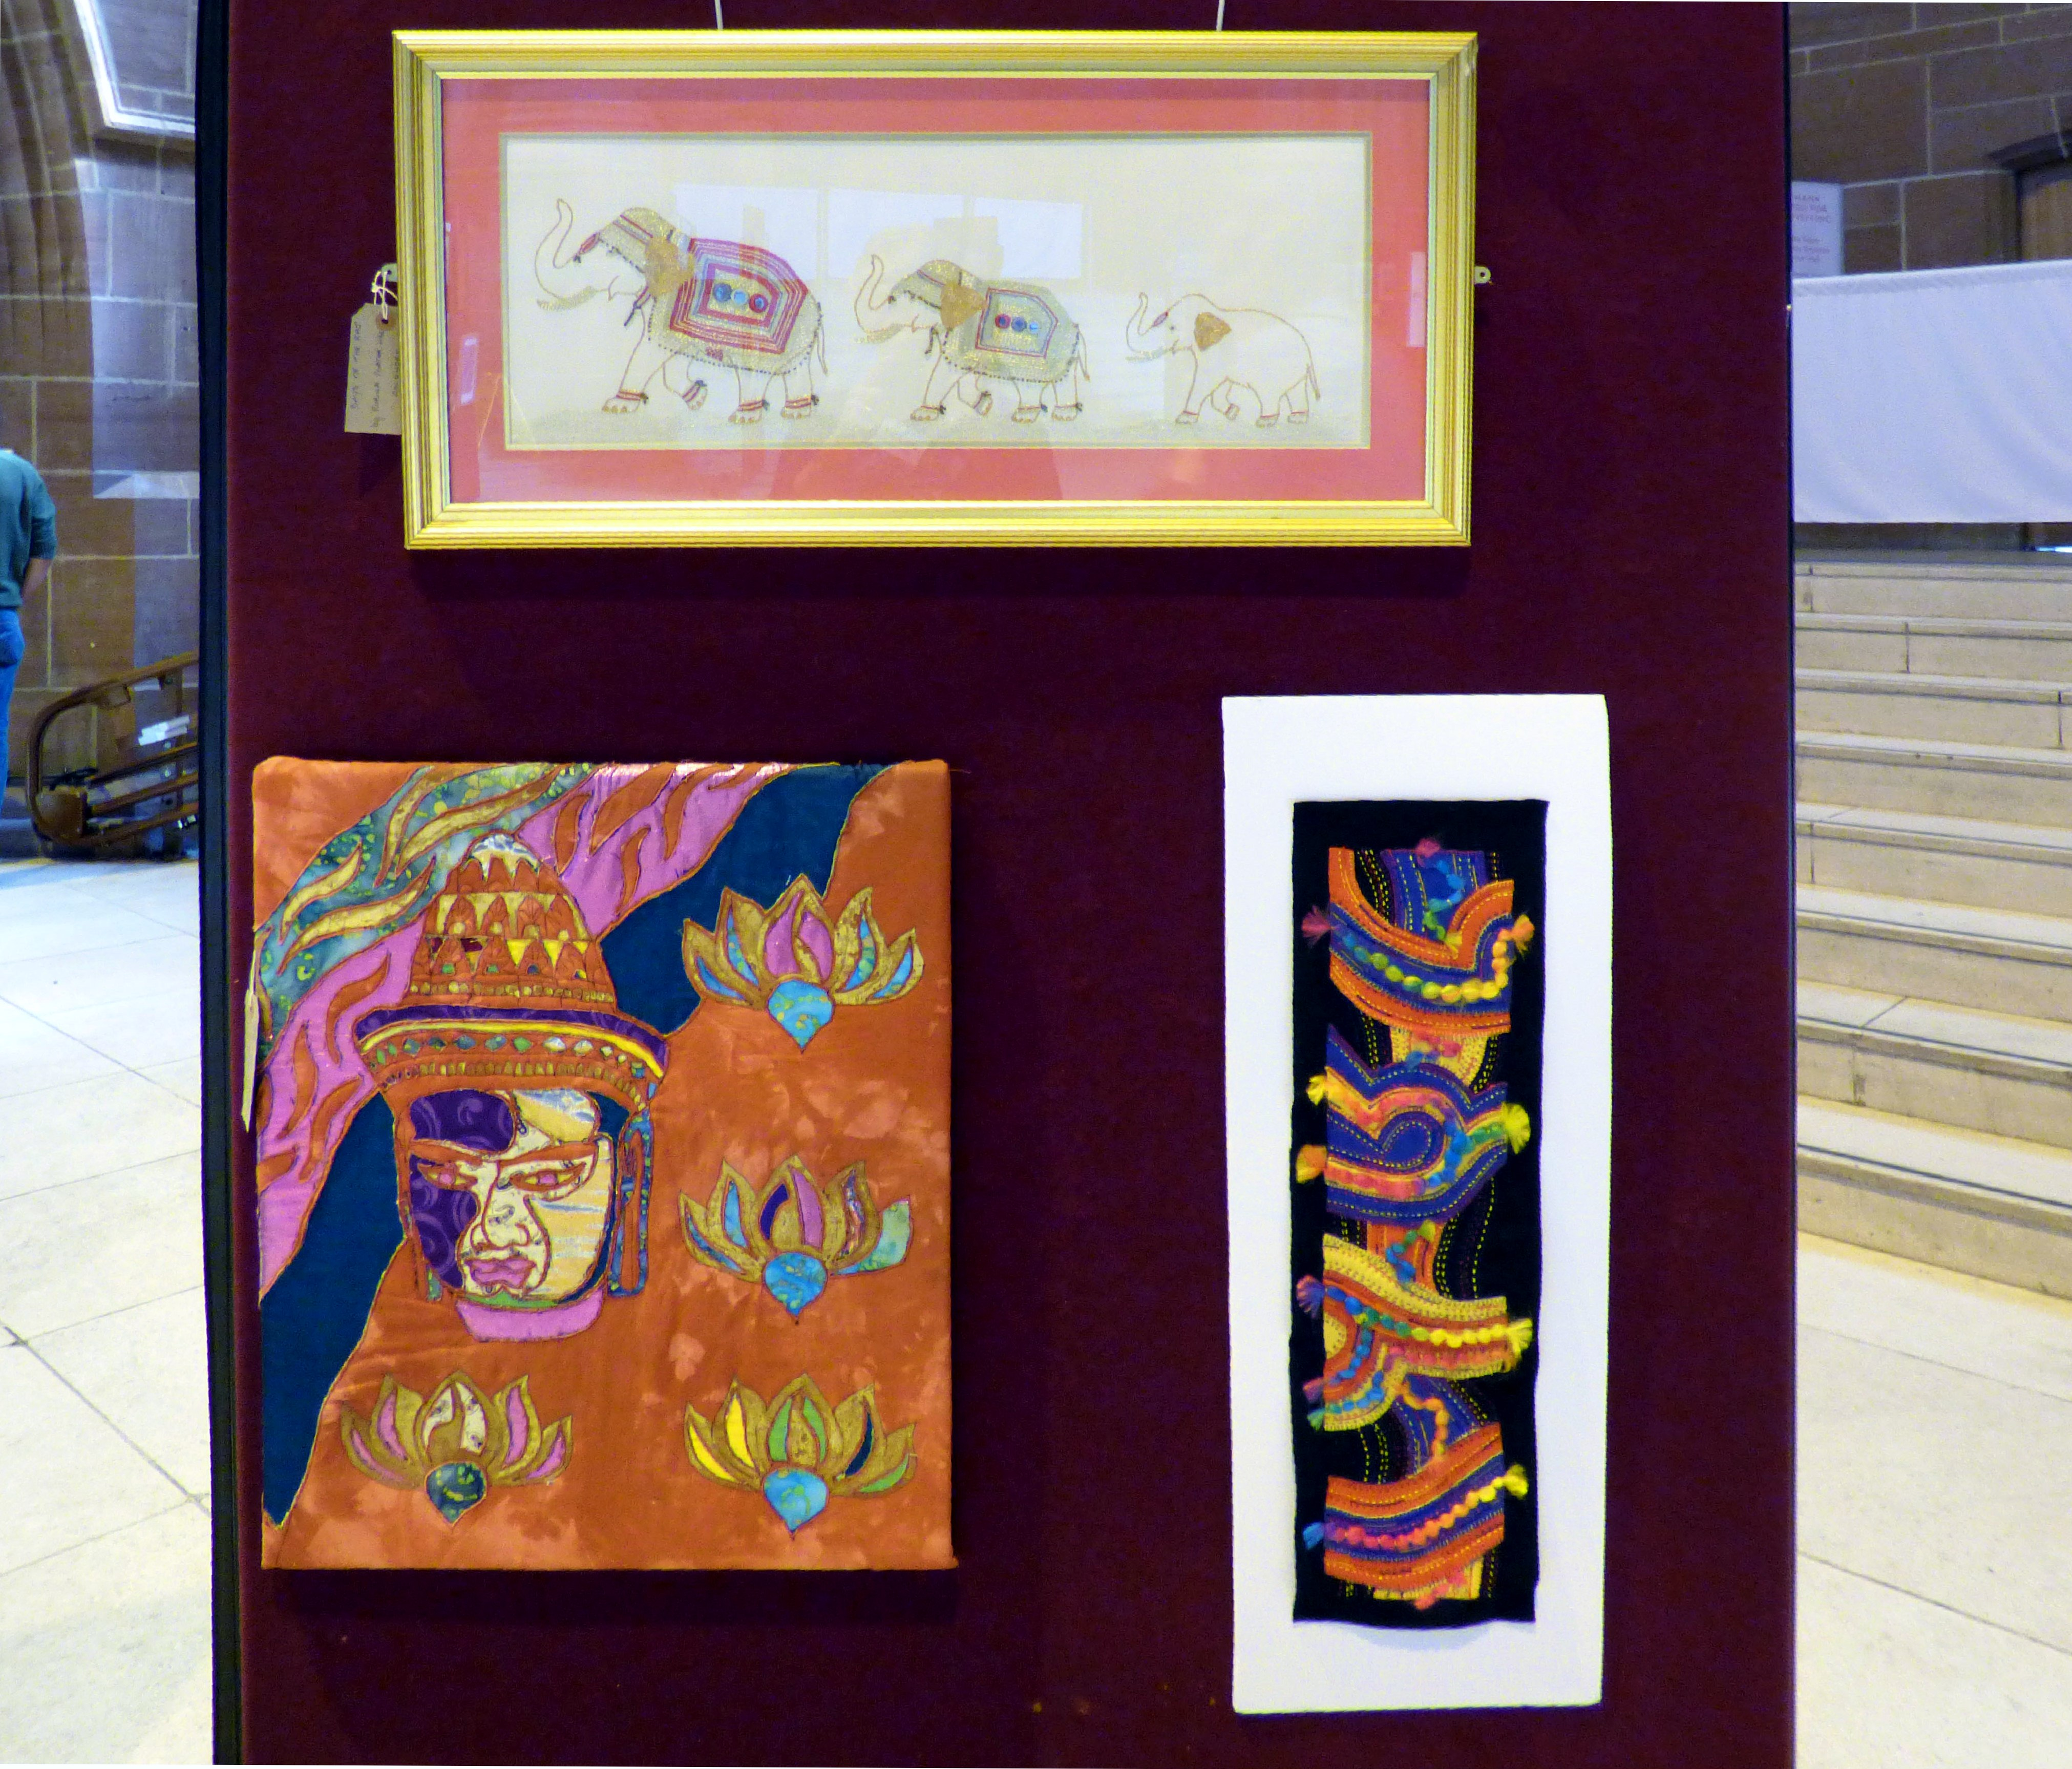 DAYS OF THE RAJ by Rubina Porter MBE, HEAD OF VISHNU by Hilary McCormack and DESIGN FOR A BANNER by Elsie Watkins at 60 Glorious Years exhibition 2016